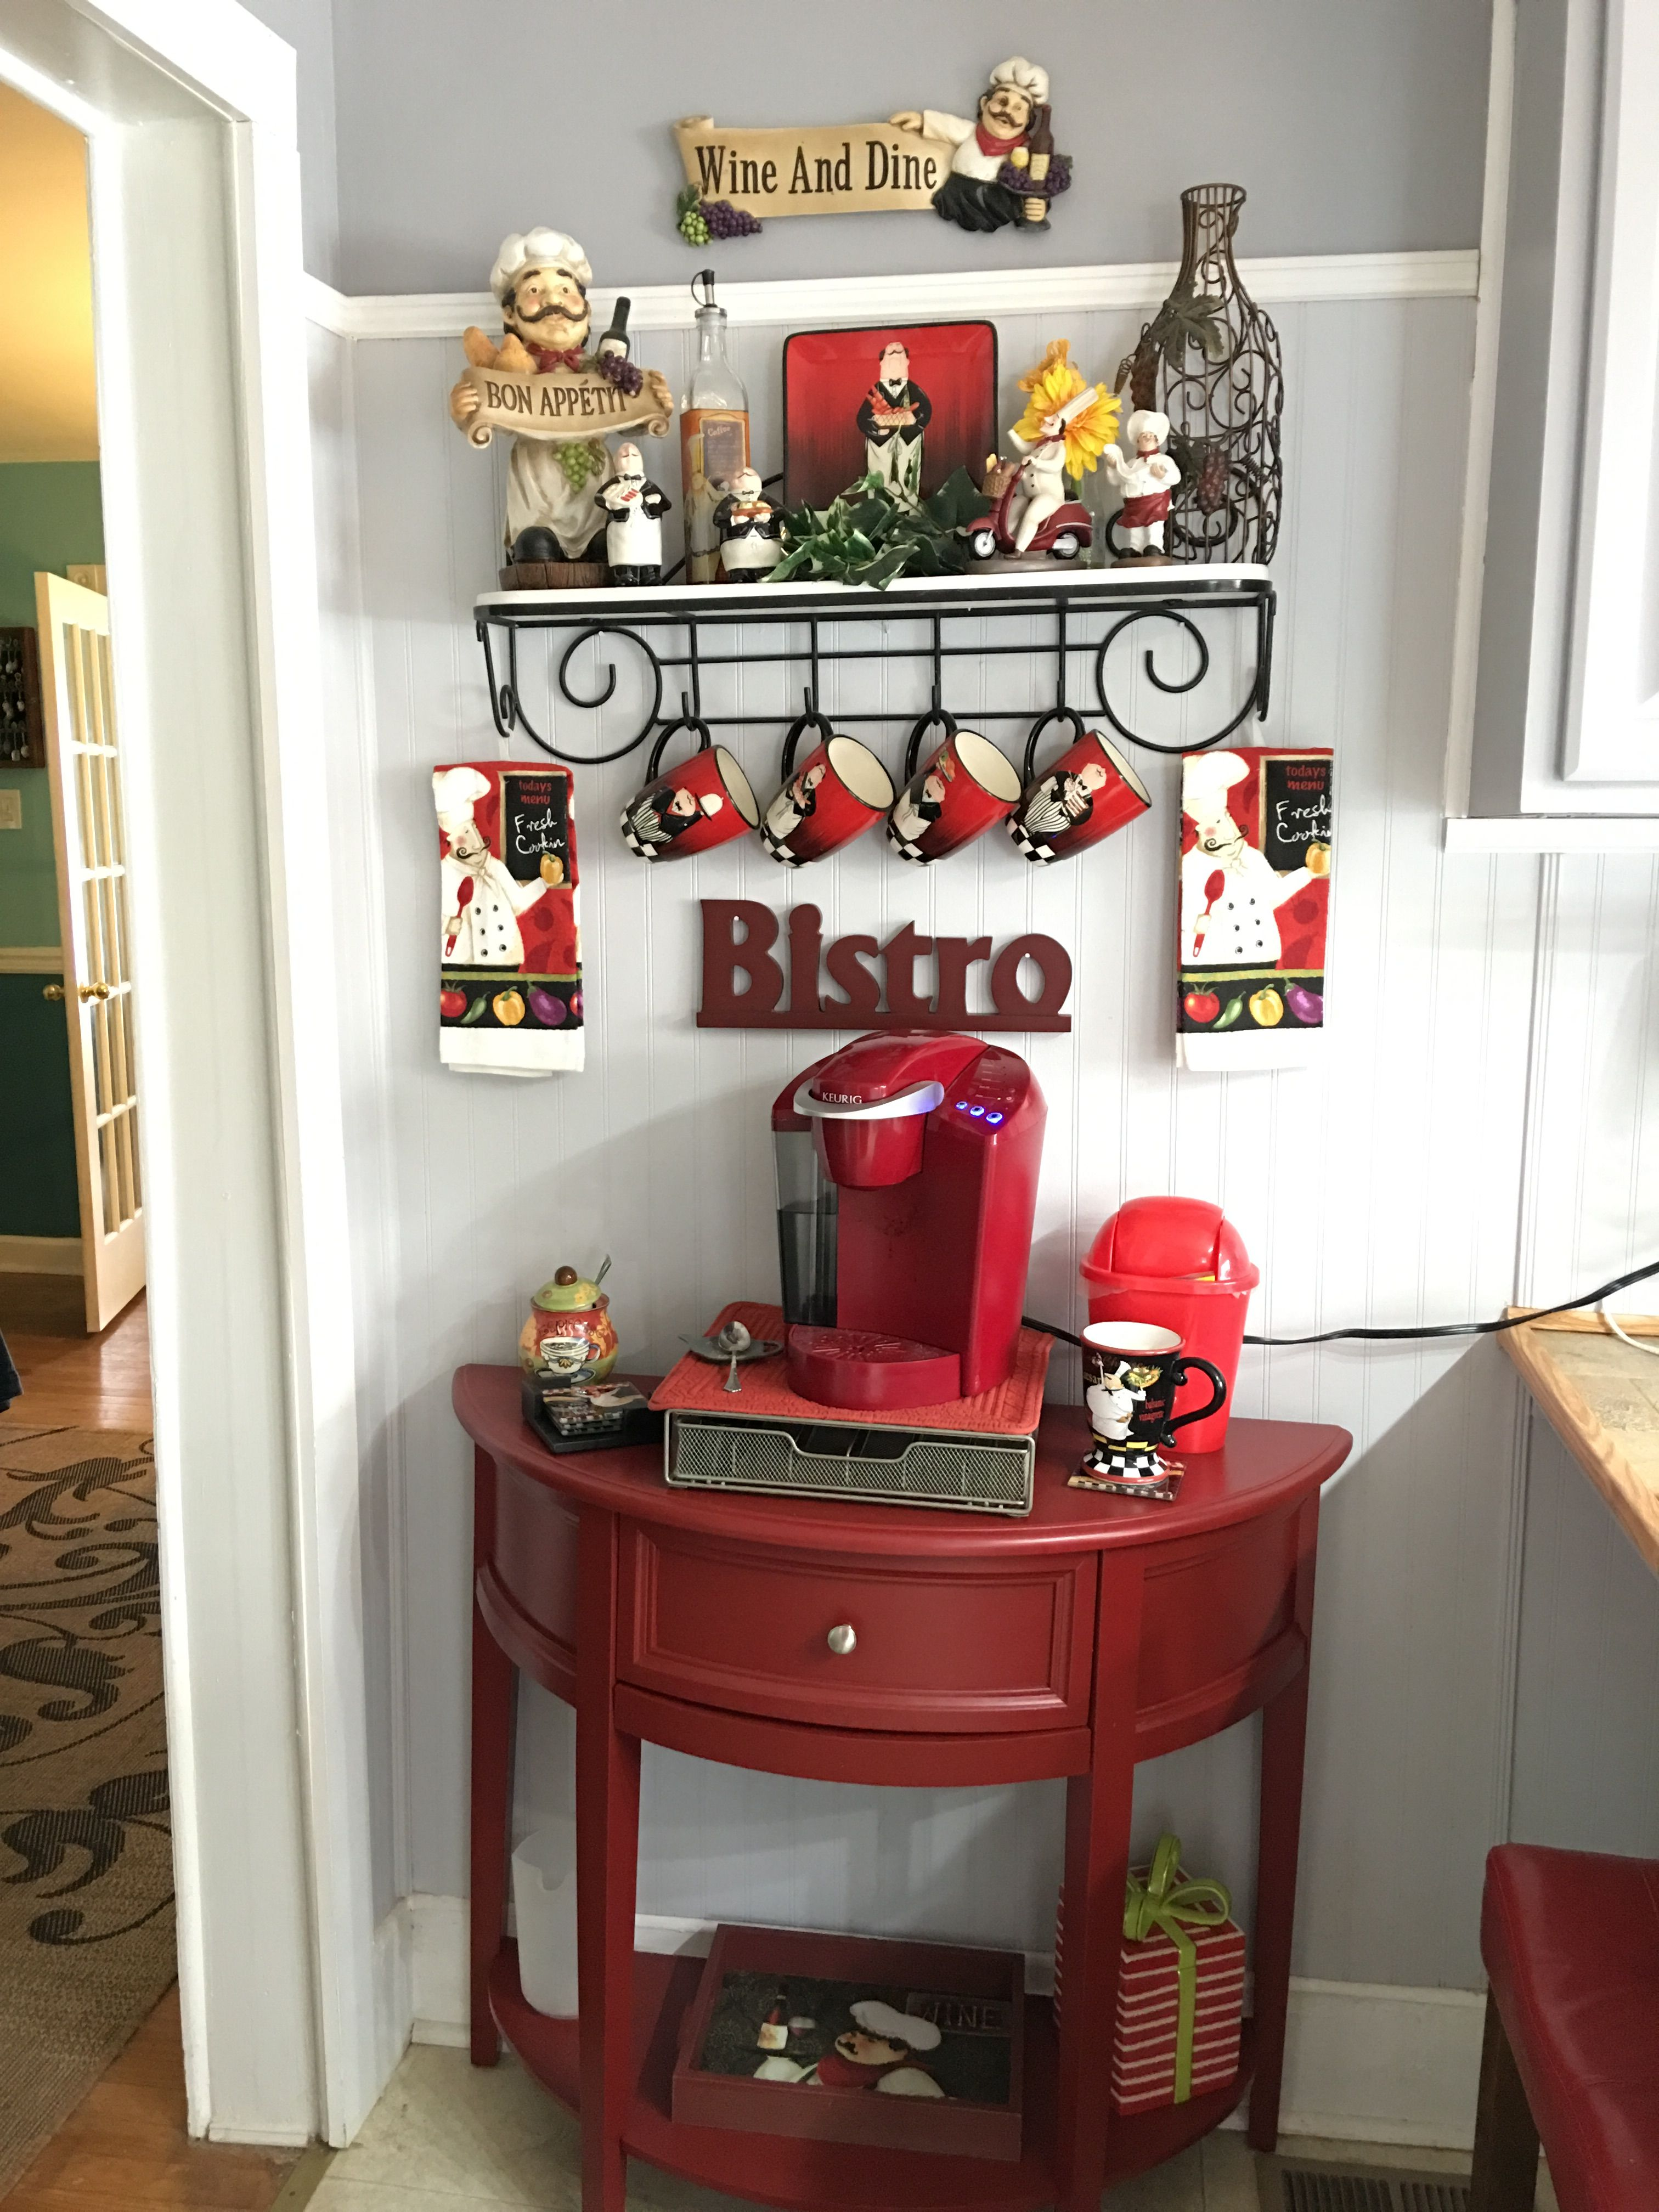 coffee decoration for kitchen how much does a new cost chef bistro decor fat chefs my pinterest